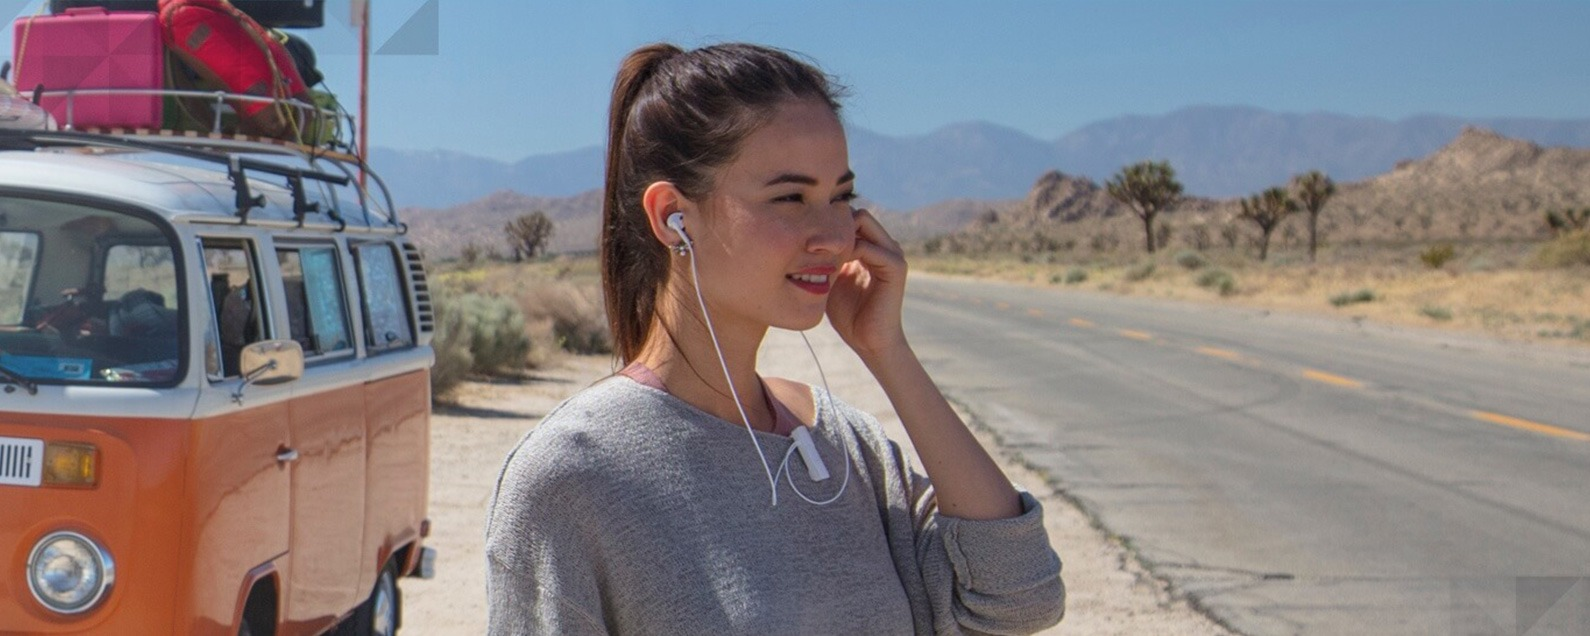 Review: Affordable Wireless Bluetooth Earbuds from ZAGG